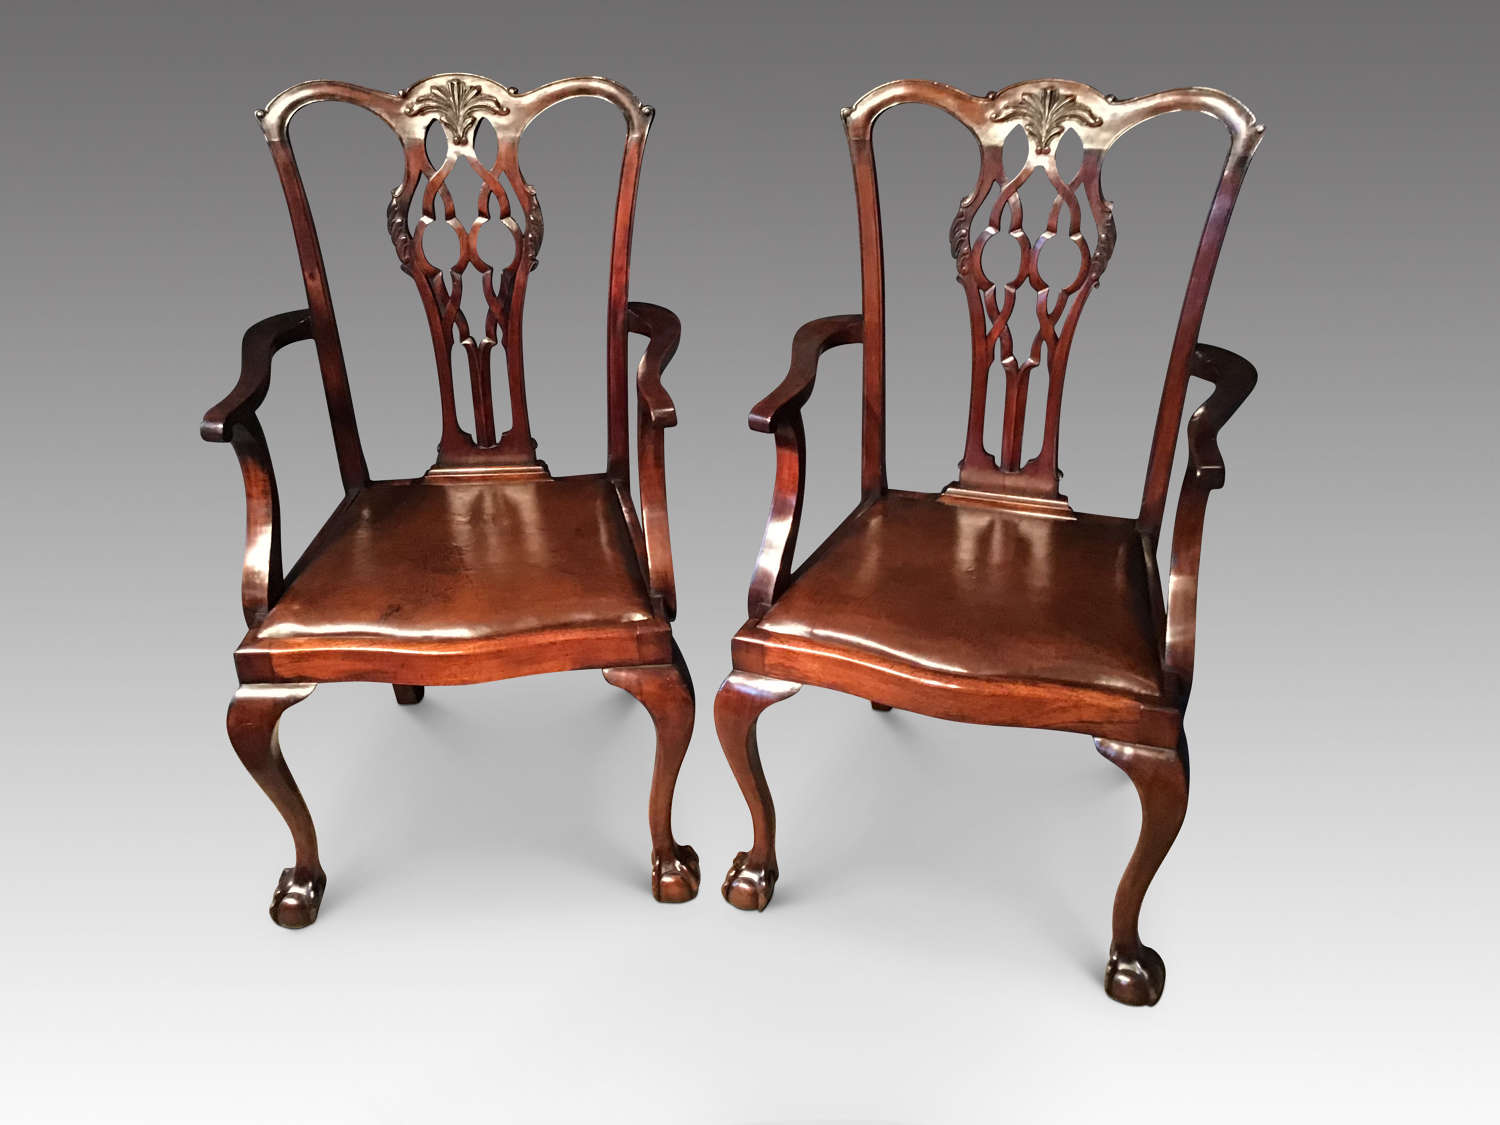 Pair of antique mahogany elbow Chairs